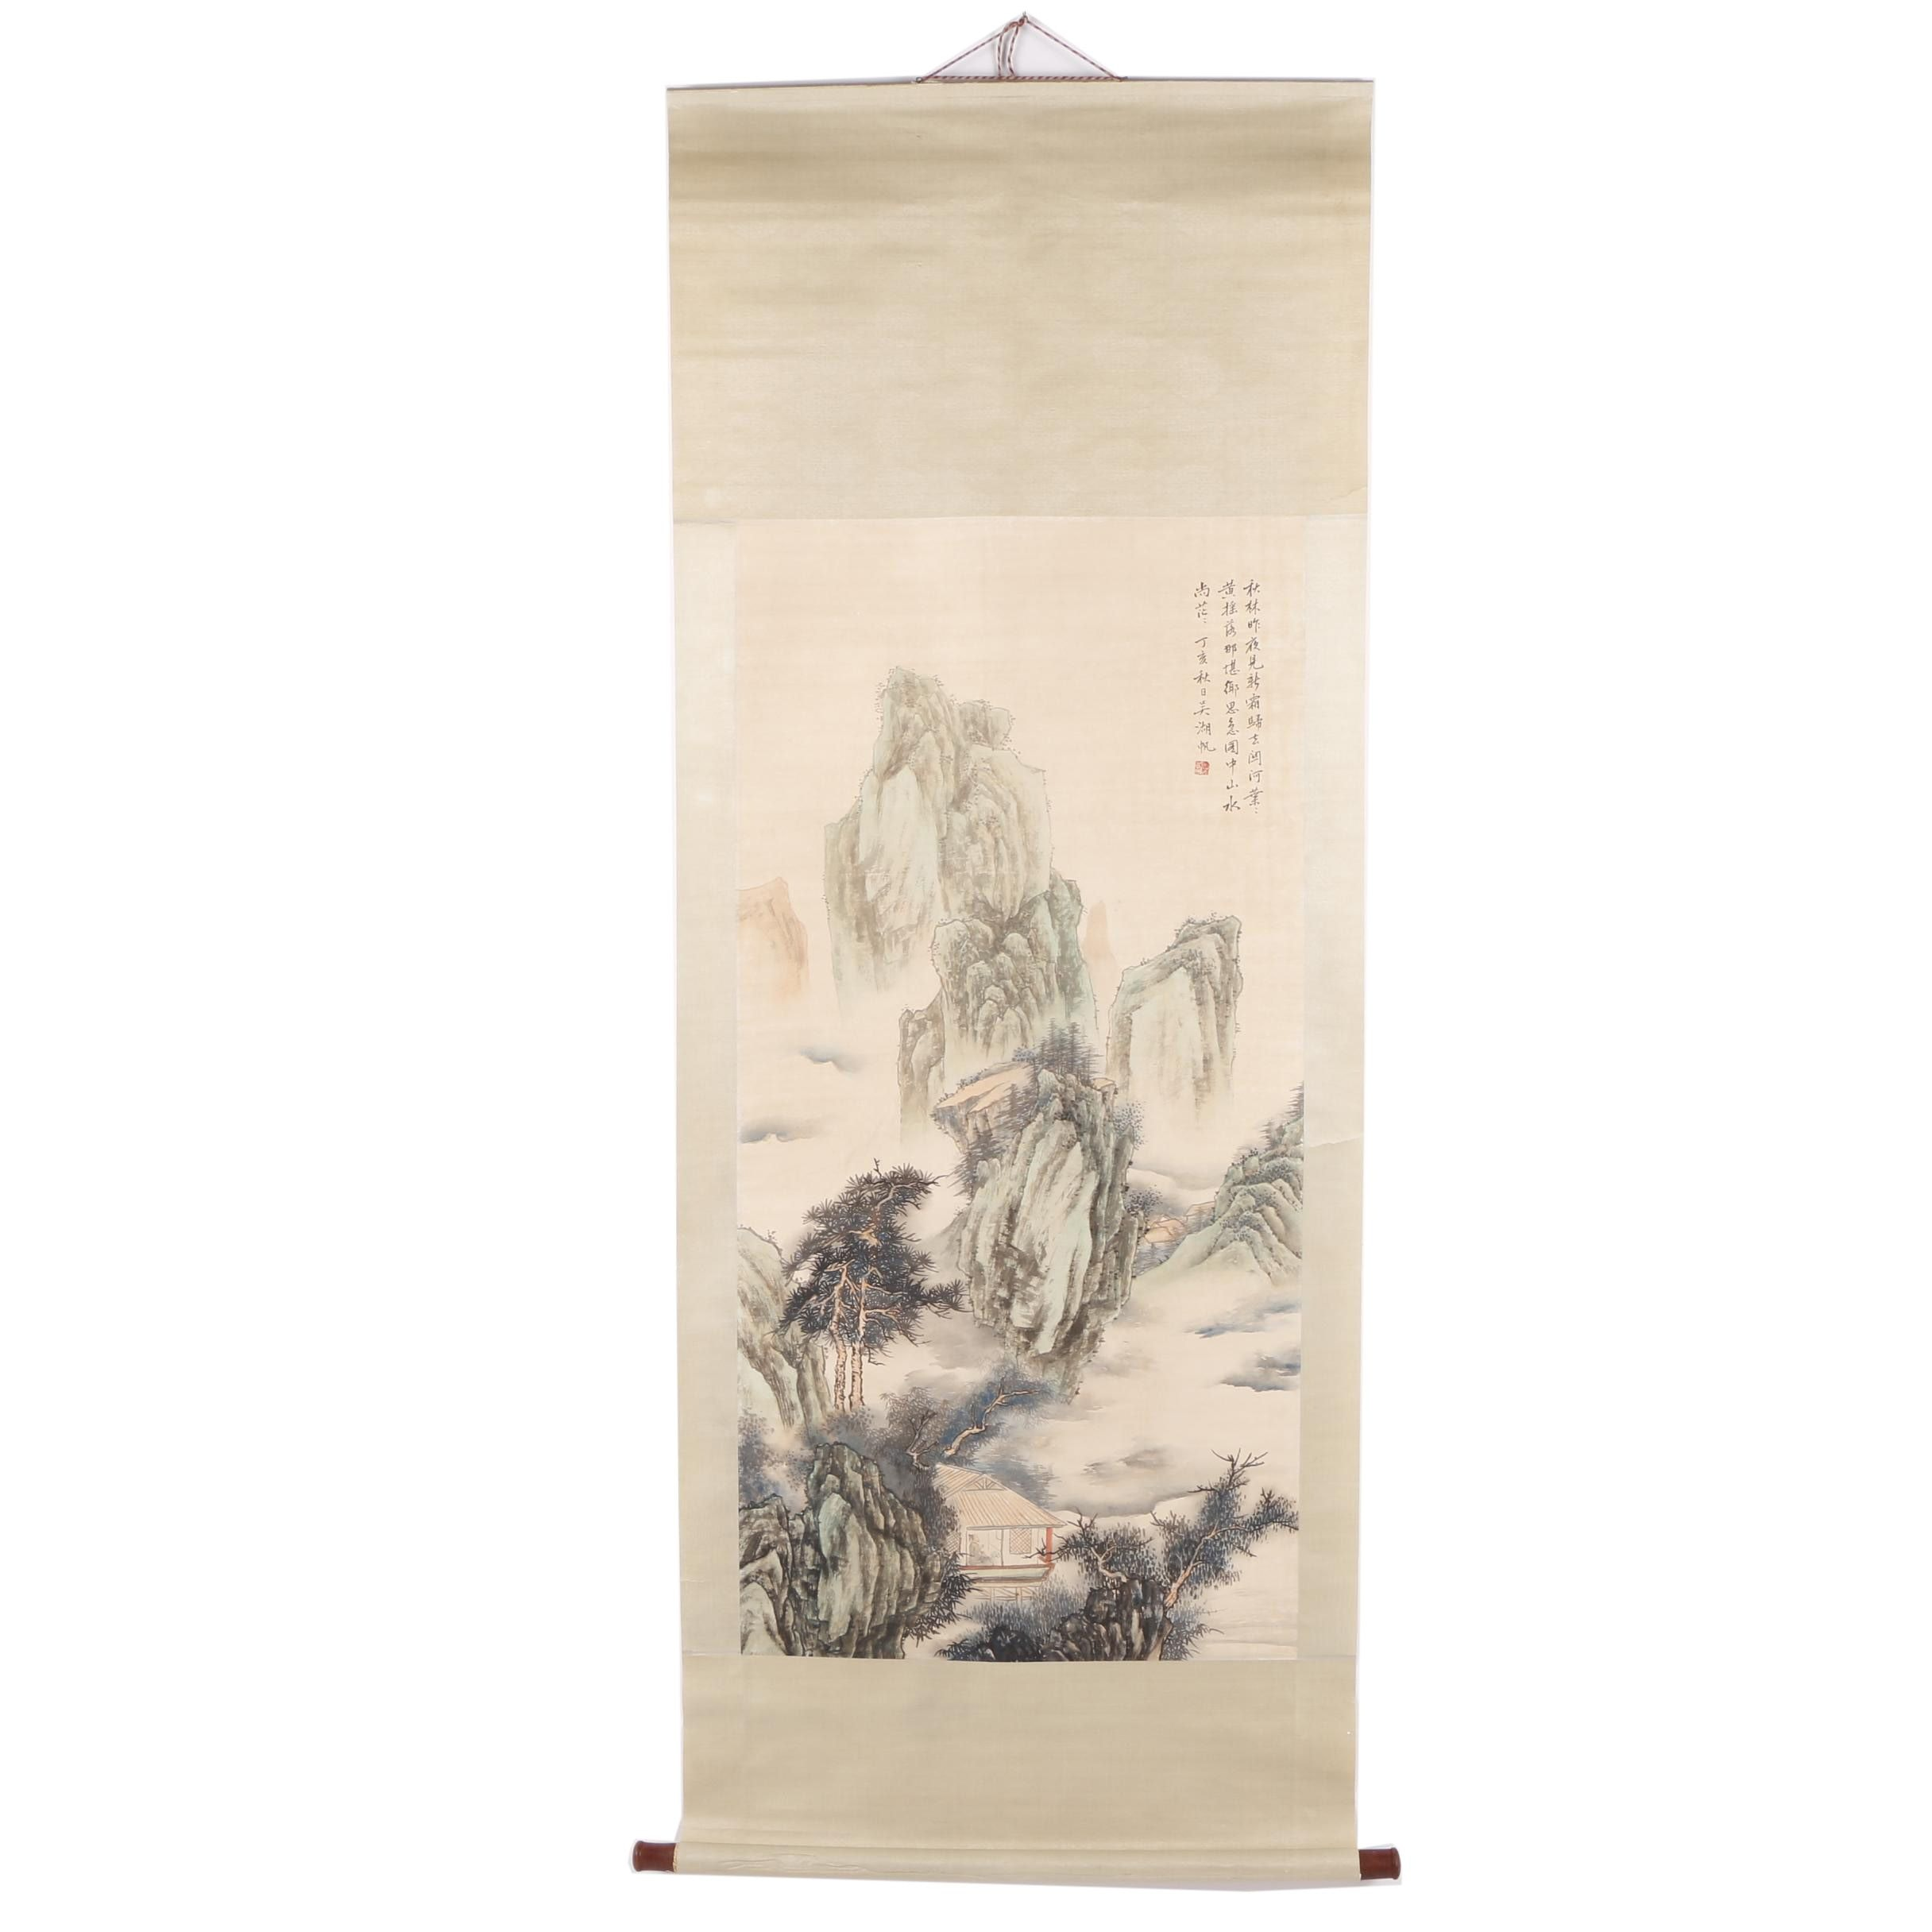 Chinese Landscape Painting on Hanging Scroll